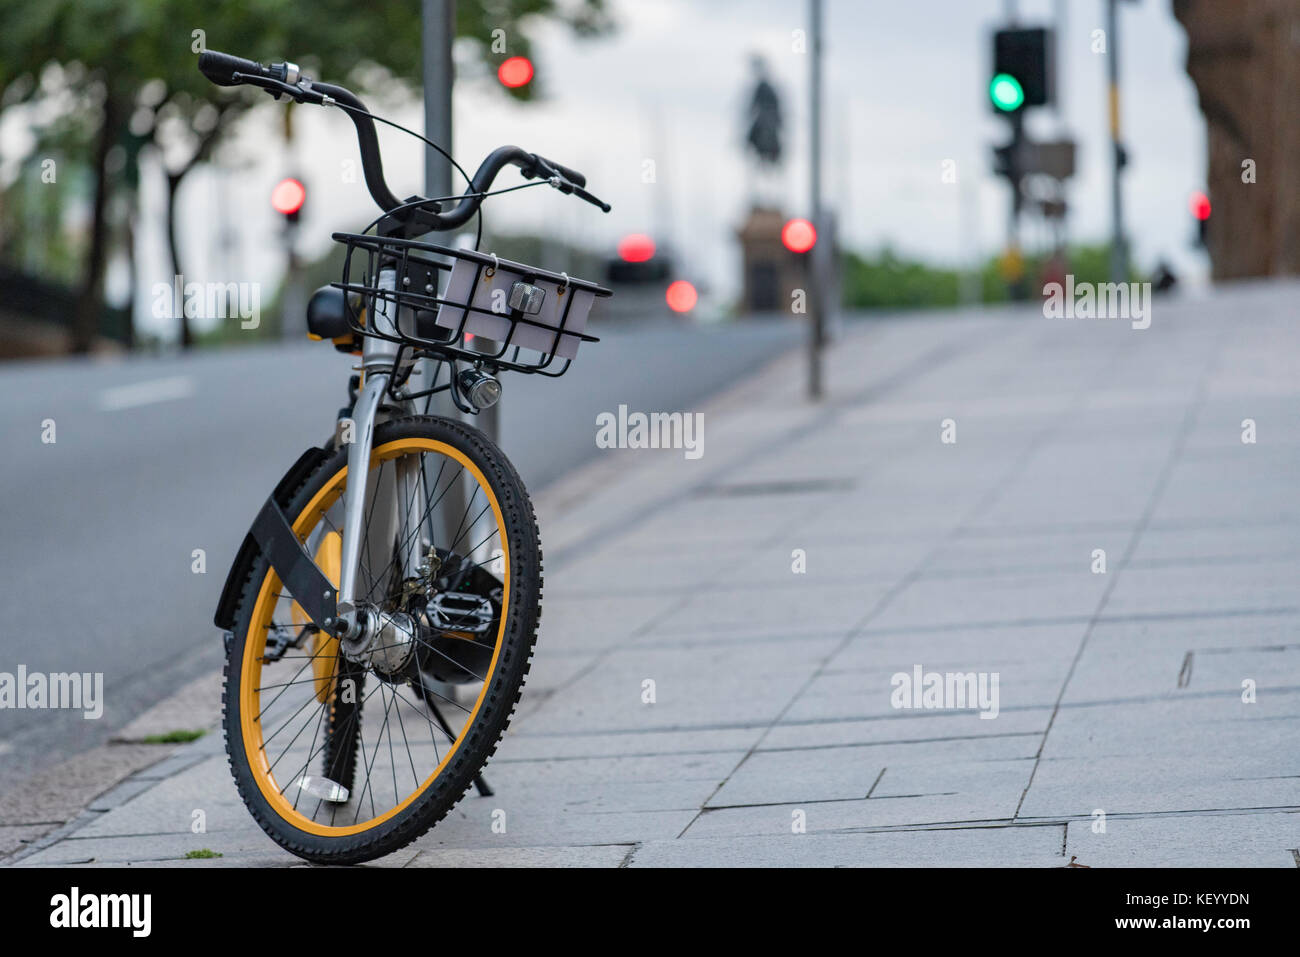 One of the many new hire bikes available in Sydney stands waiting to be rented - Stock Image